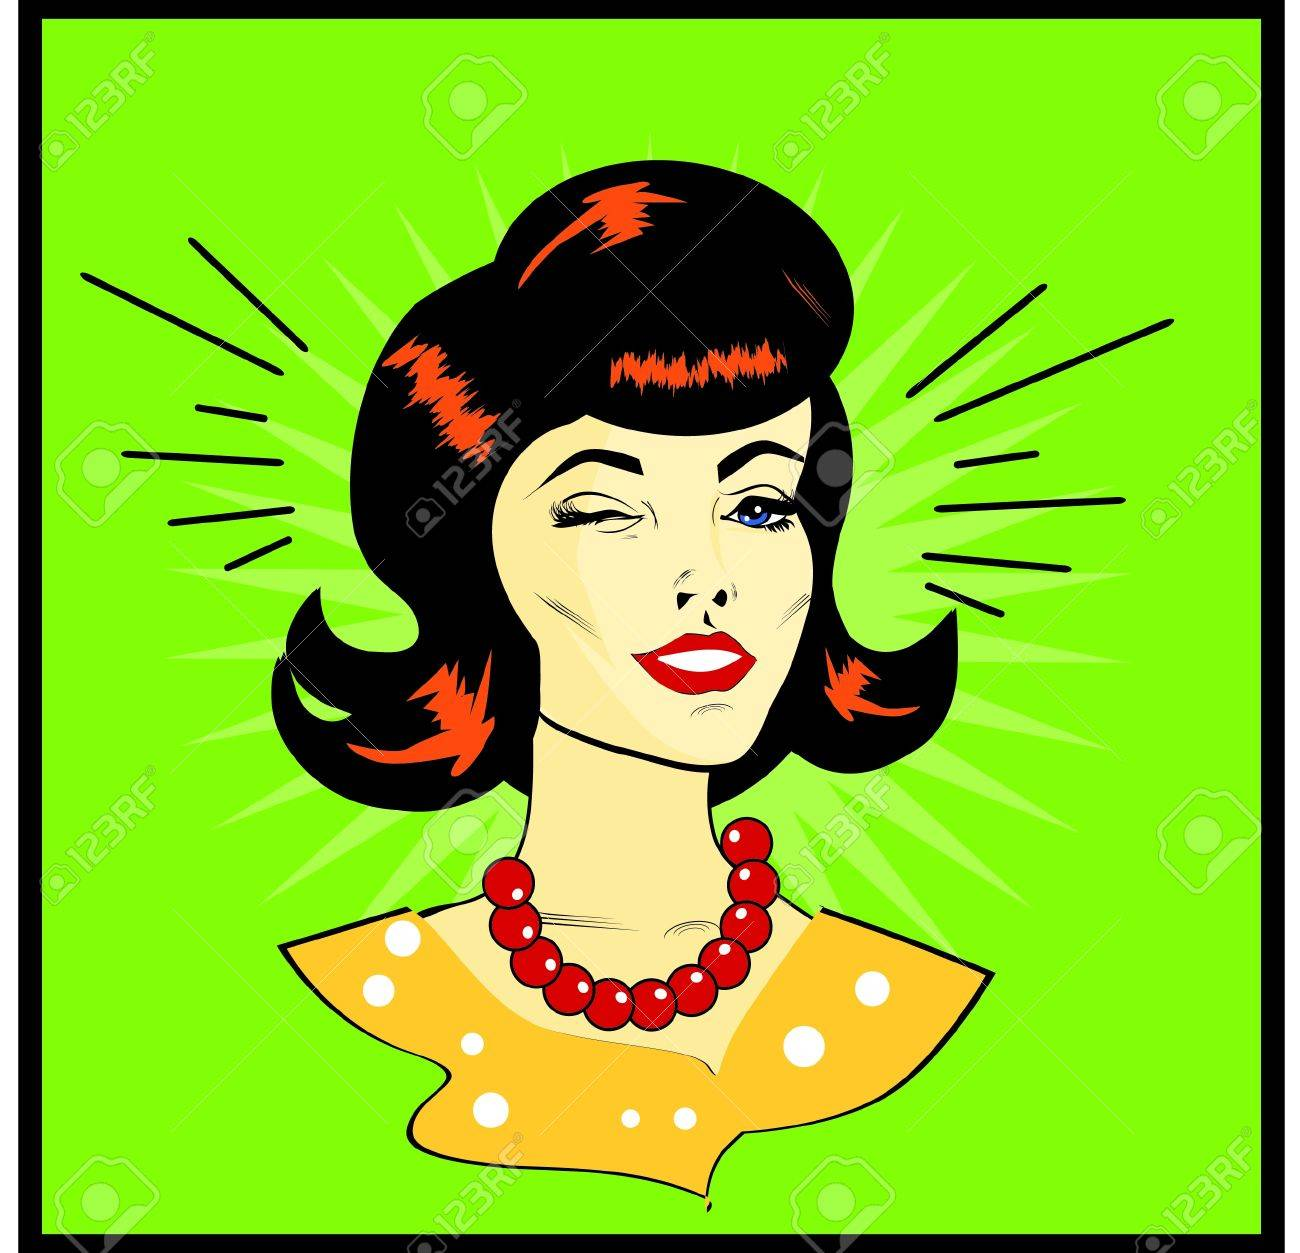 Retro Woman Winking - Retro Clip Art Royalty Free Cliparts ...